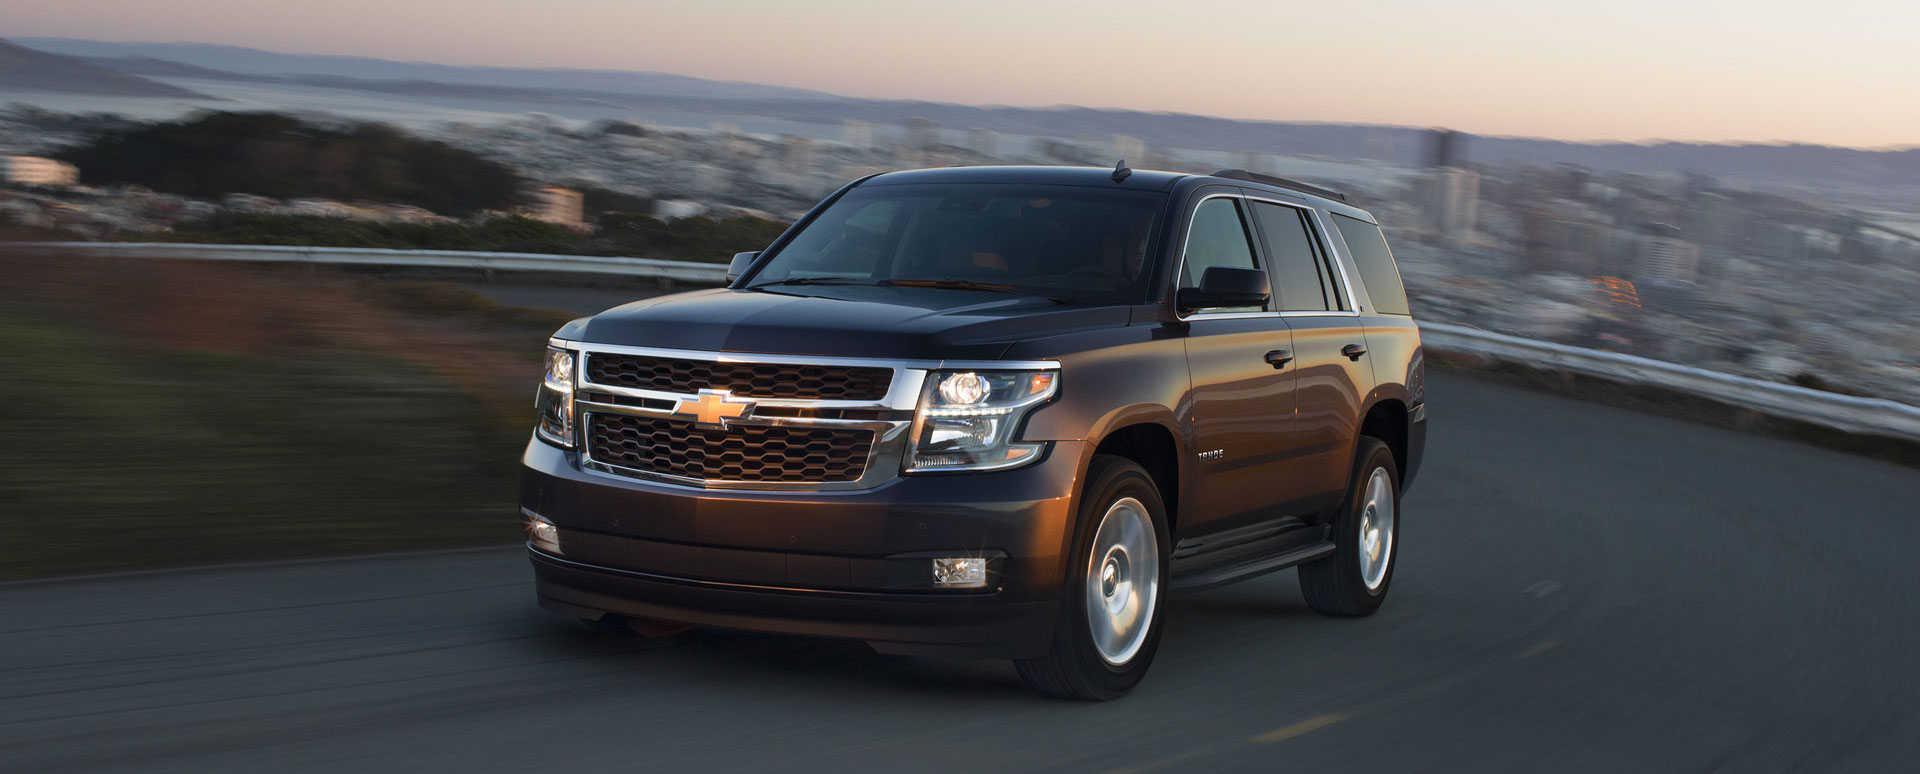 2017 chevy tahoe take a look at the power performance. Black Bedroom Furniture Sets. Home Design Ideas